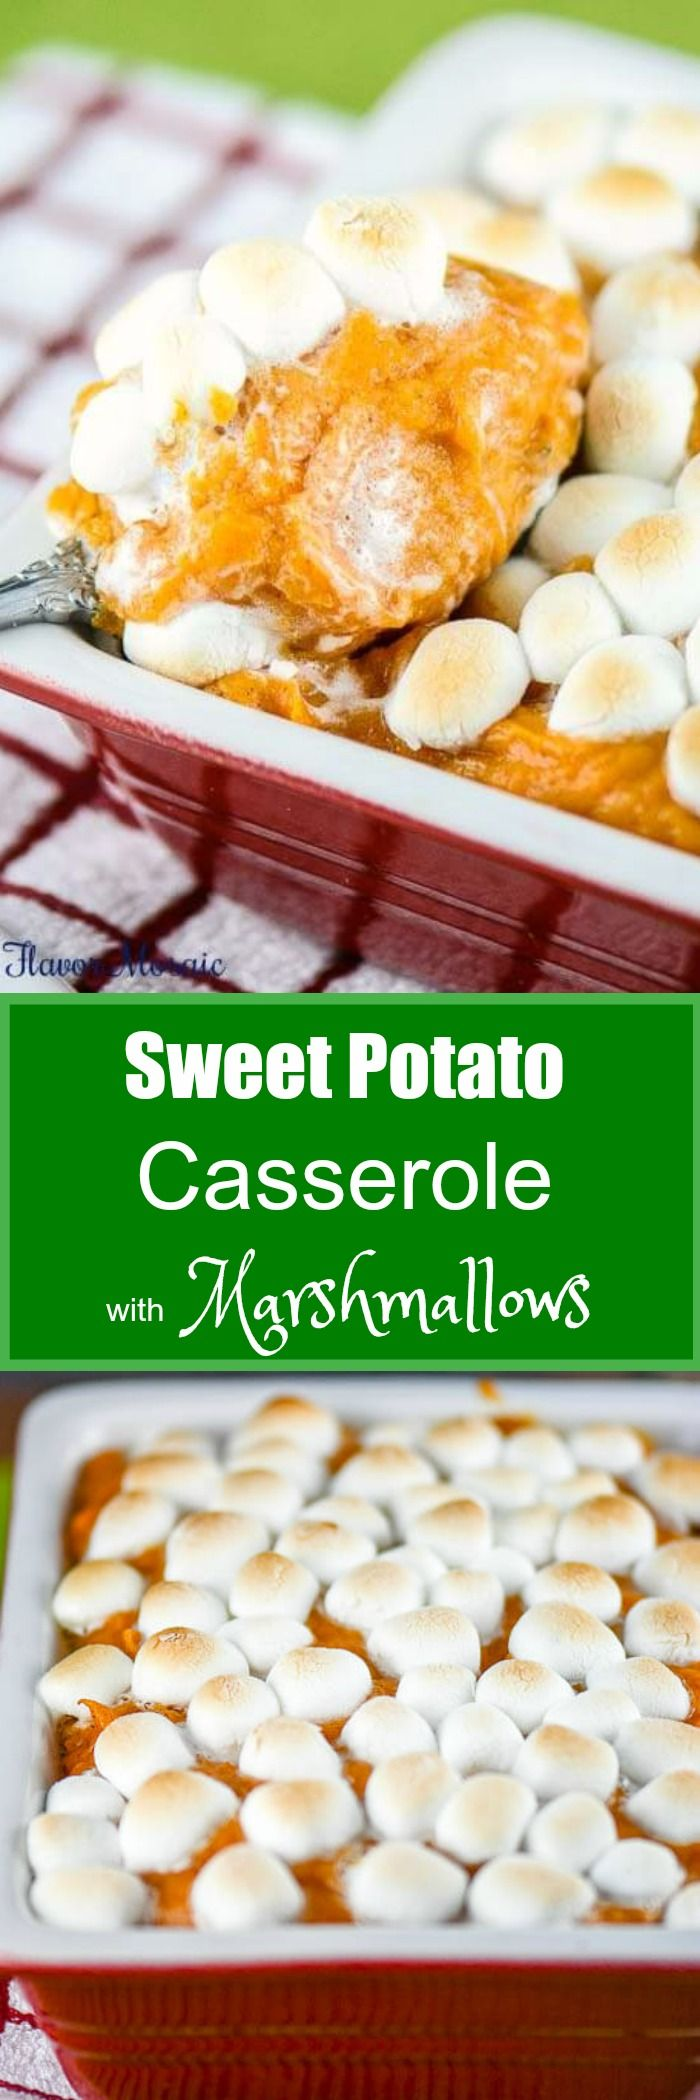 This Sweet Potato Casserole with Marshmallows has been a traditional Thanksgiving side dish in our family for as long as I can remember.